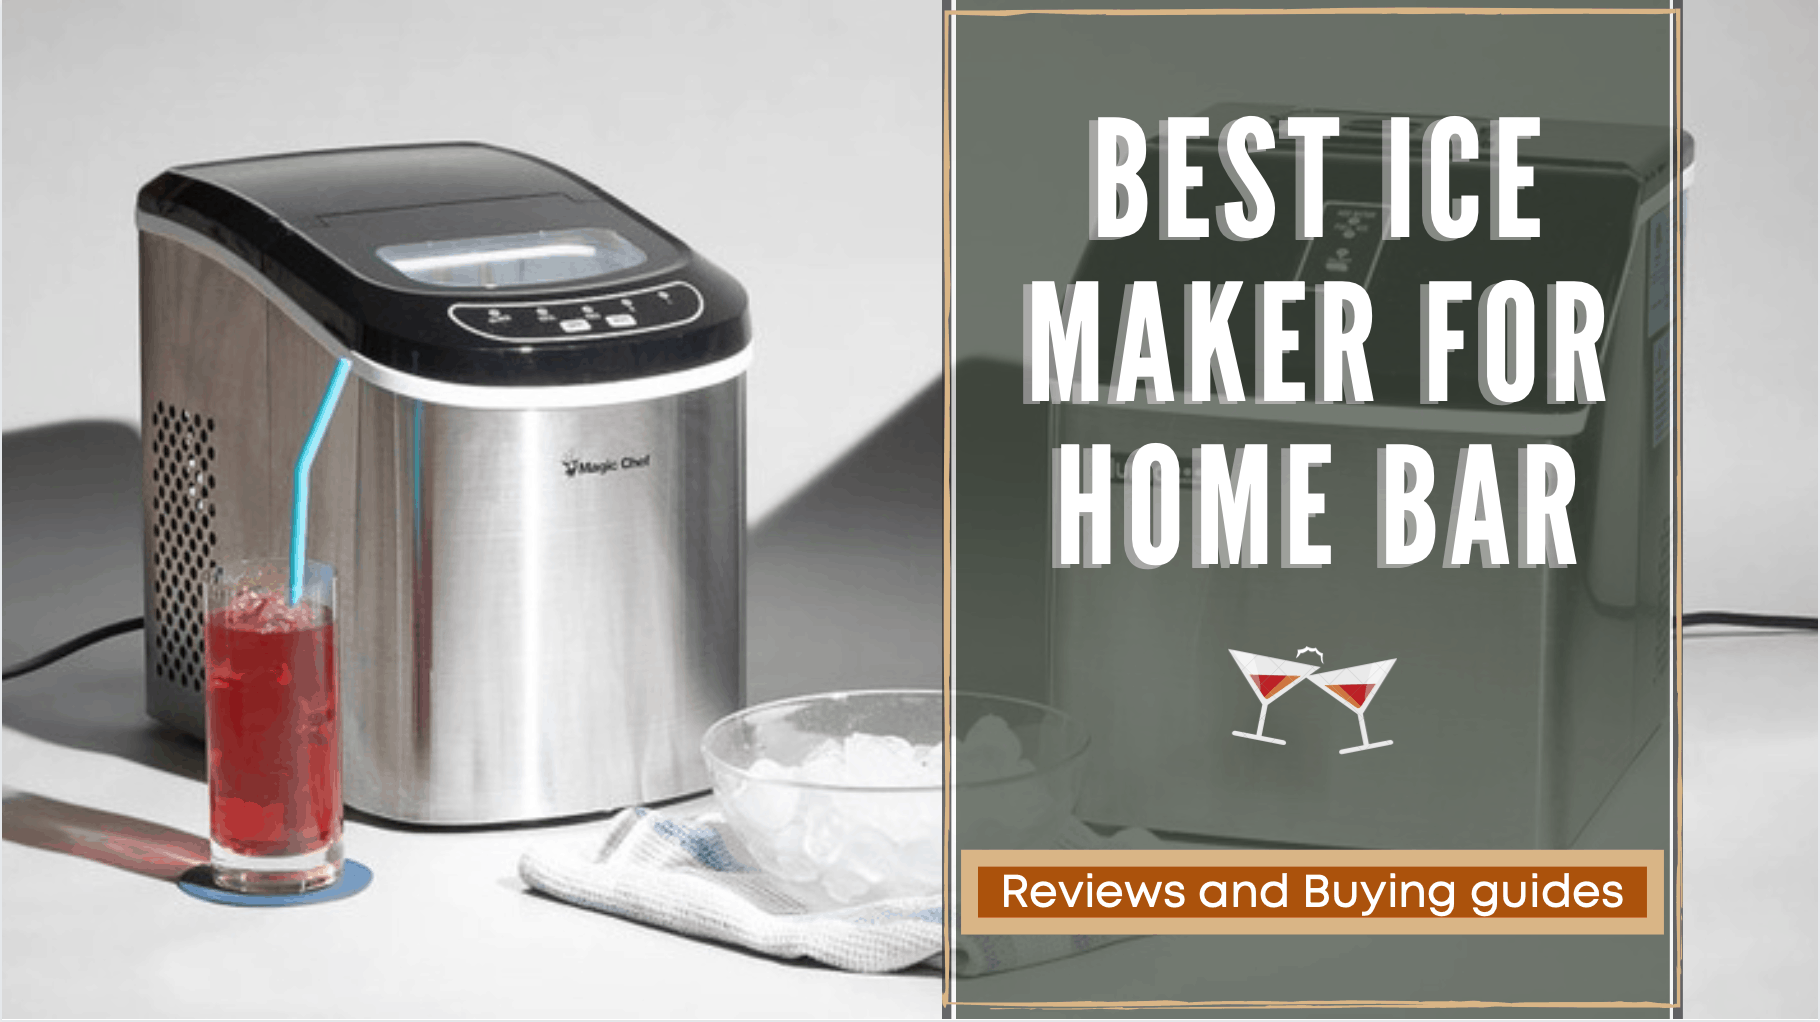 Top 15 Best Ice Maker For Home Bar Reviews Comparison 2021